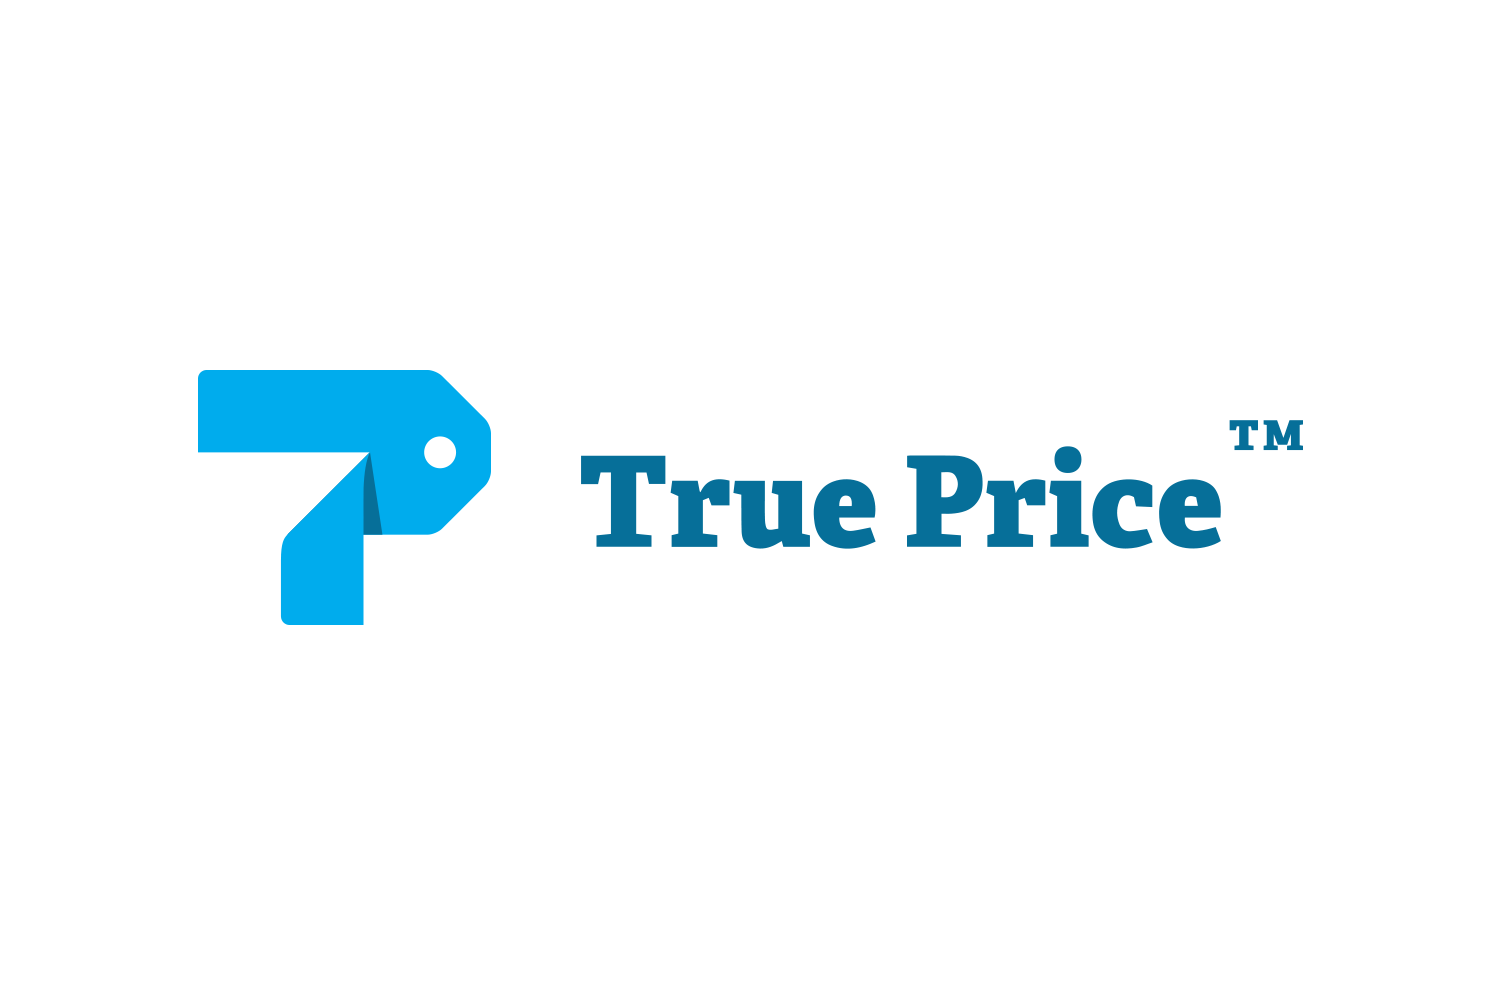 <em>True Price</em> is an organization that calculates the true price of products and services, quantifying their impact on society and the environment.